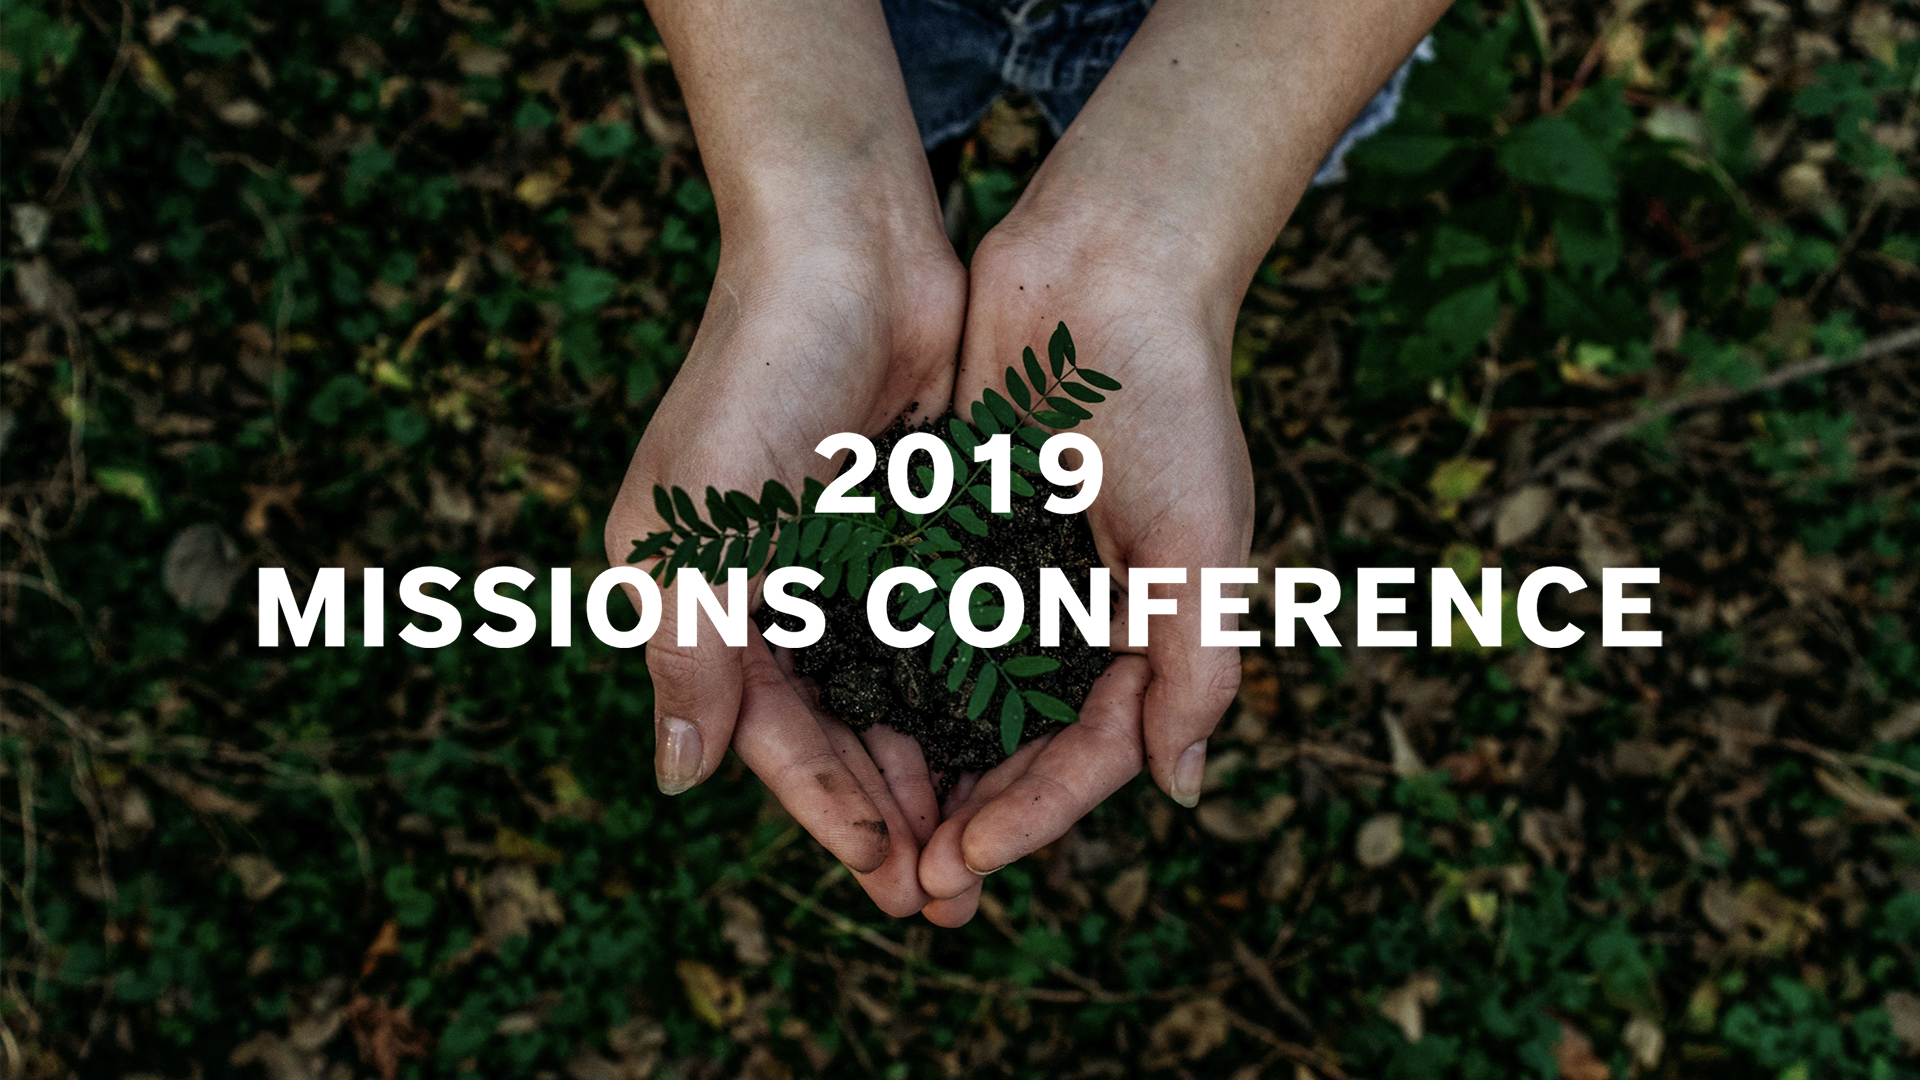 2019 Missions Conference